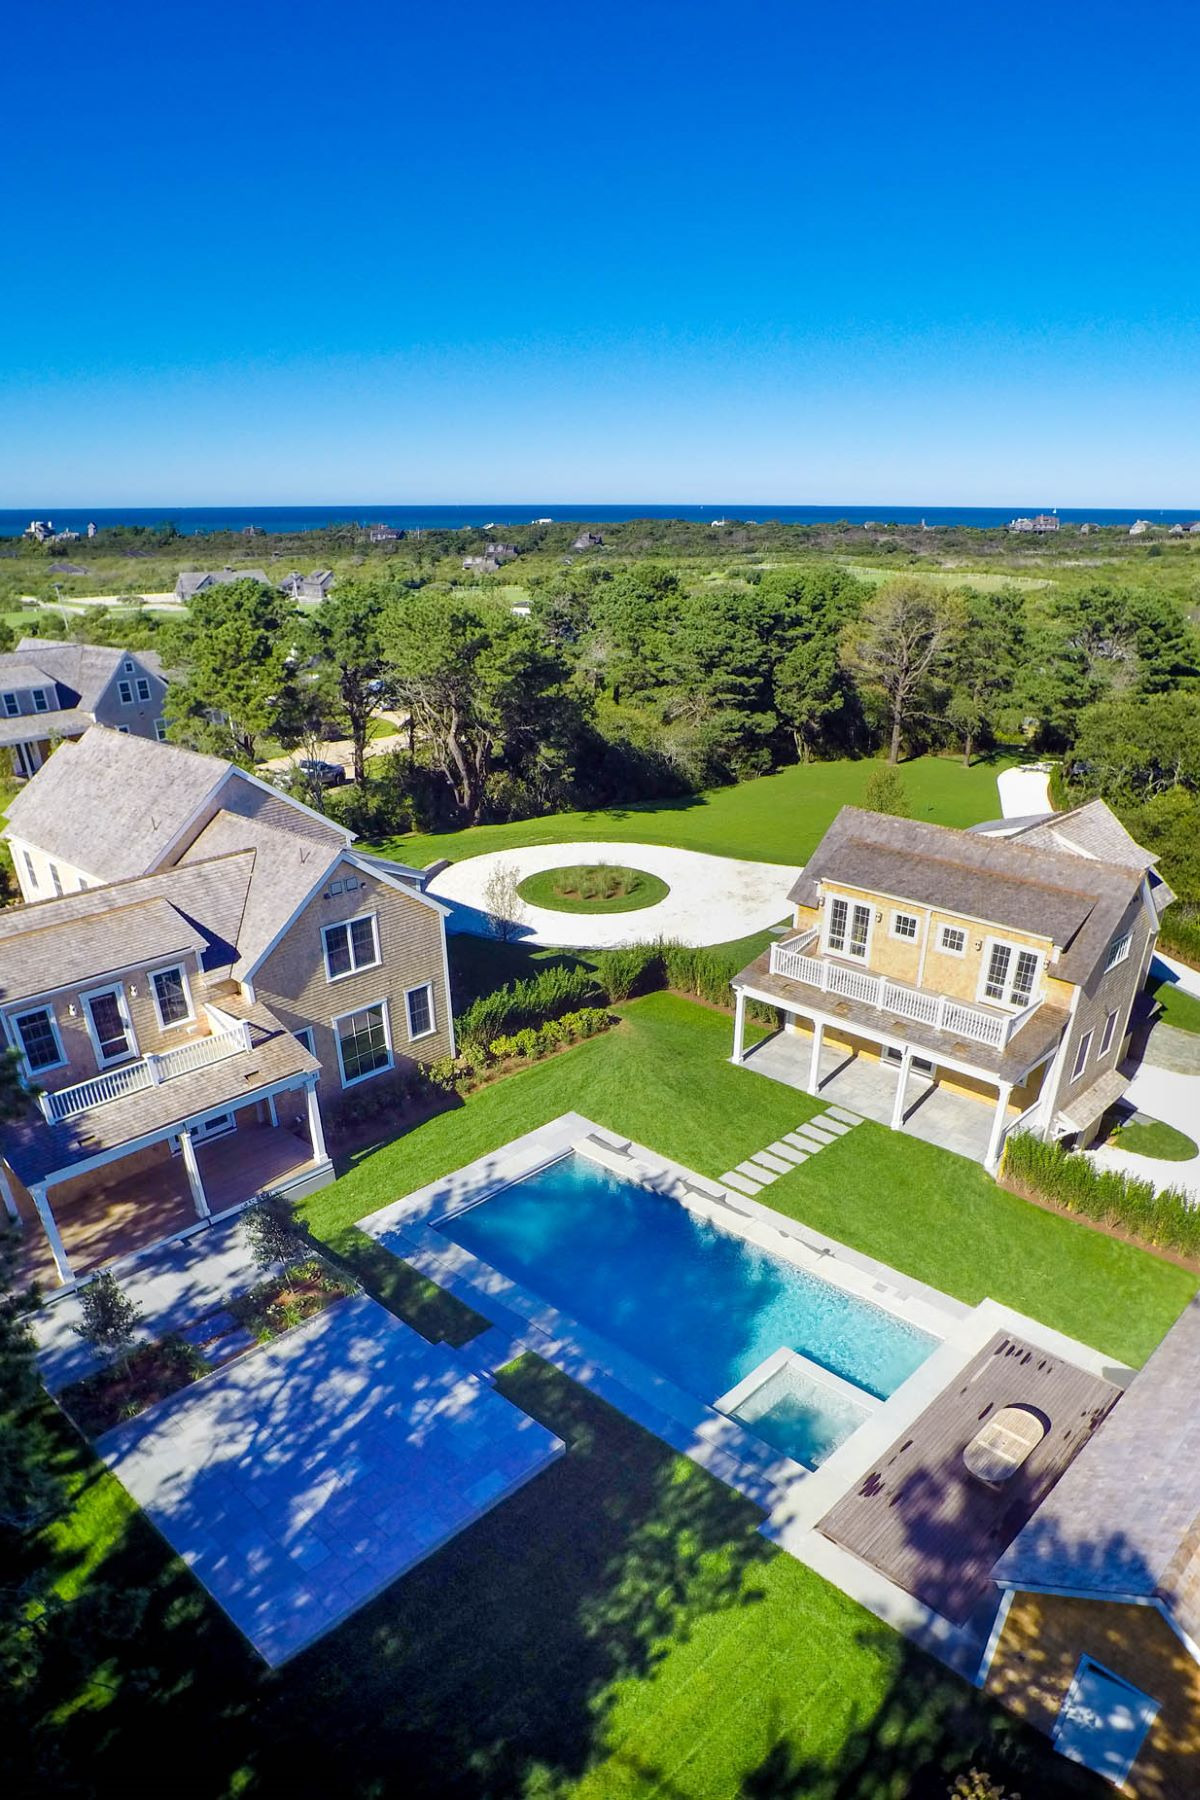 Single Family Home for Sale at New. Stylish. Modern. State of the Art. 7 Primrose Lane Nantucket, Massachusetts, 02554 United States